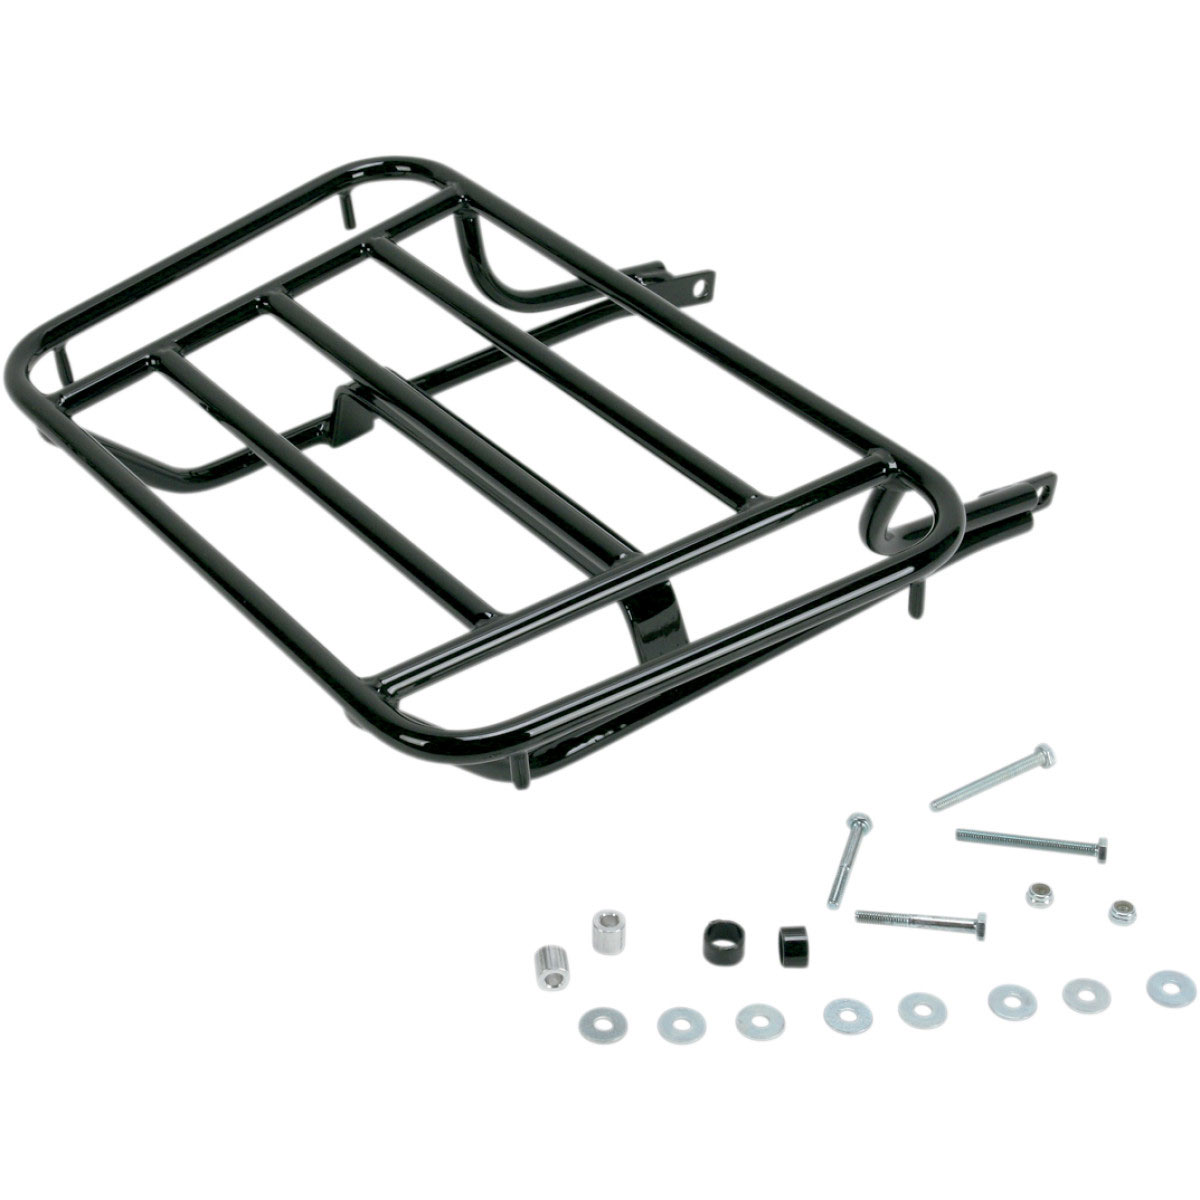 Moose Expedition Rear Rack For Klx250sf 09 15